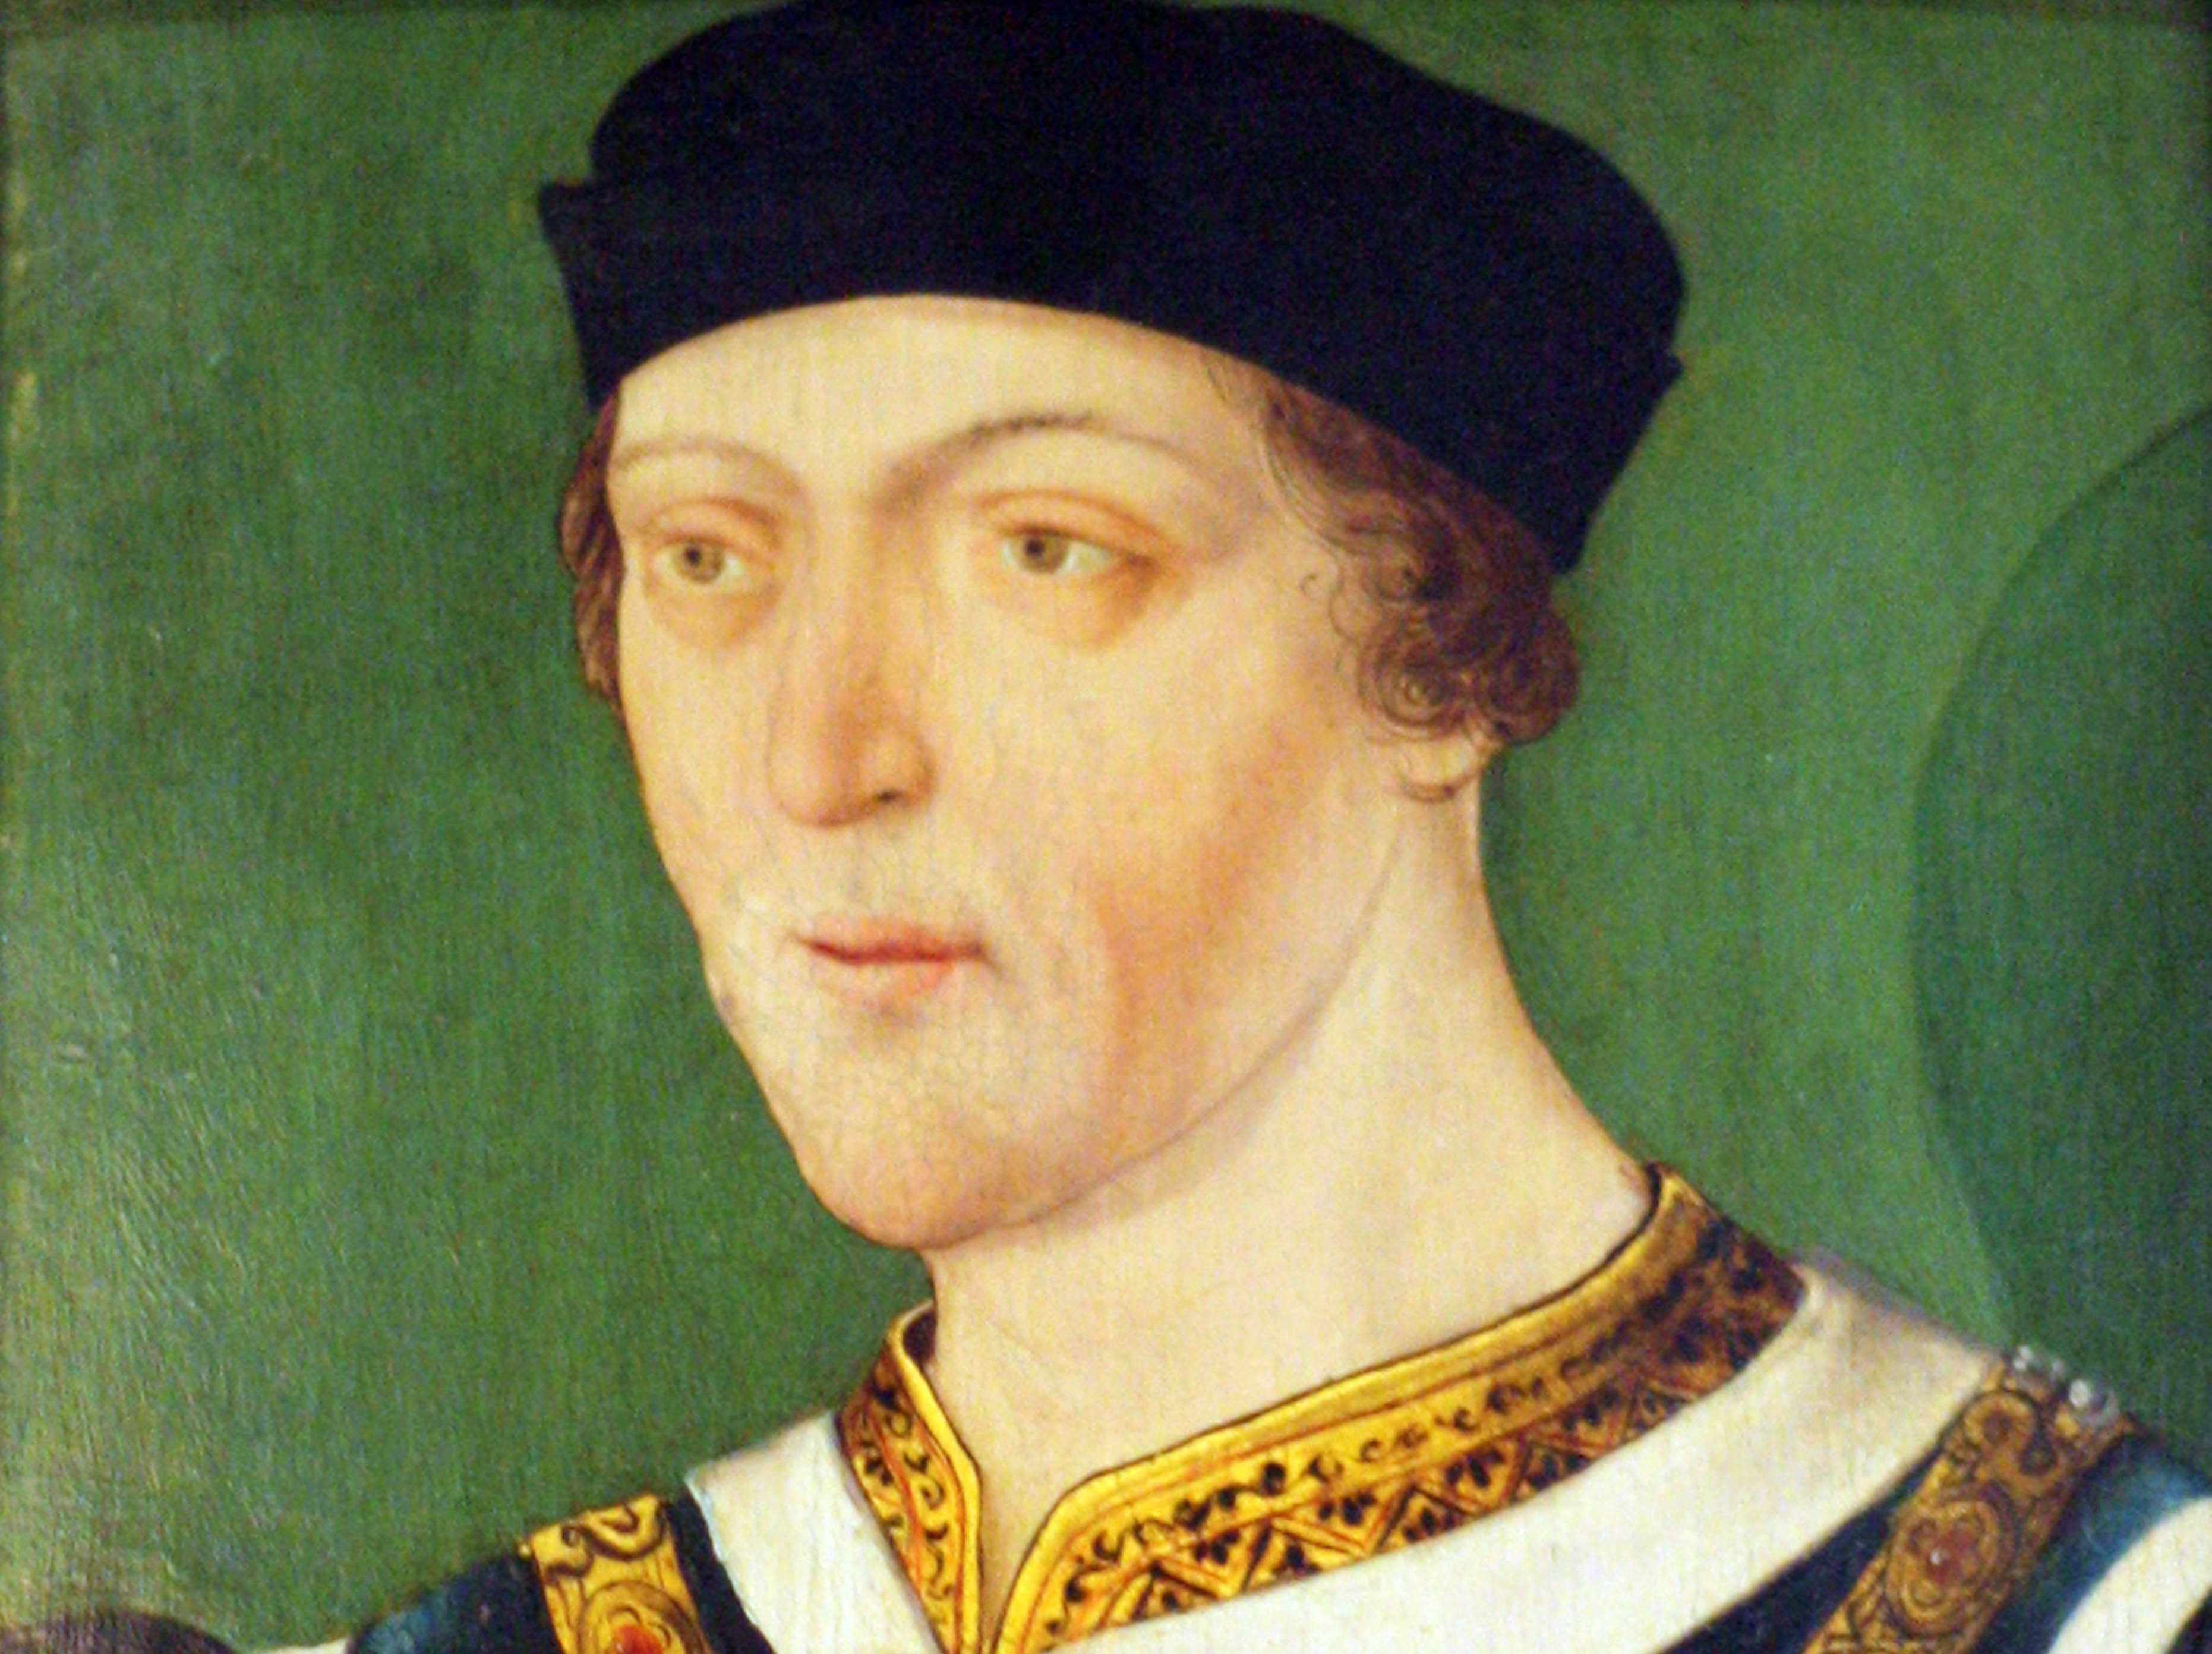 As a child king, Henry VI – shown in a c16th-century portrait – learned the lessons of kingship from books. Unfortunately, those books didn't extol the merits of ruthlessness and practising realpolitik. (Photo by Universal History Archive/UIG via Getty Images)